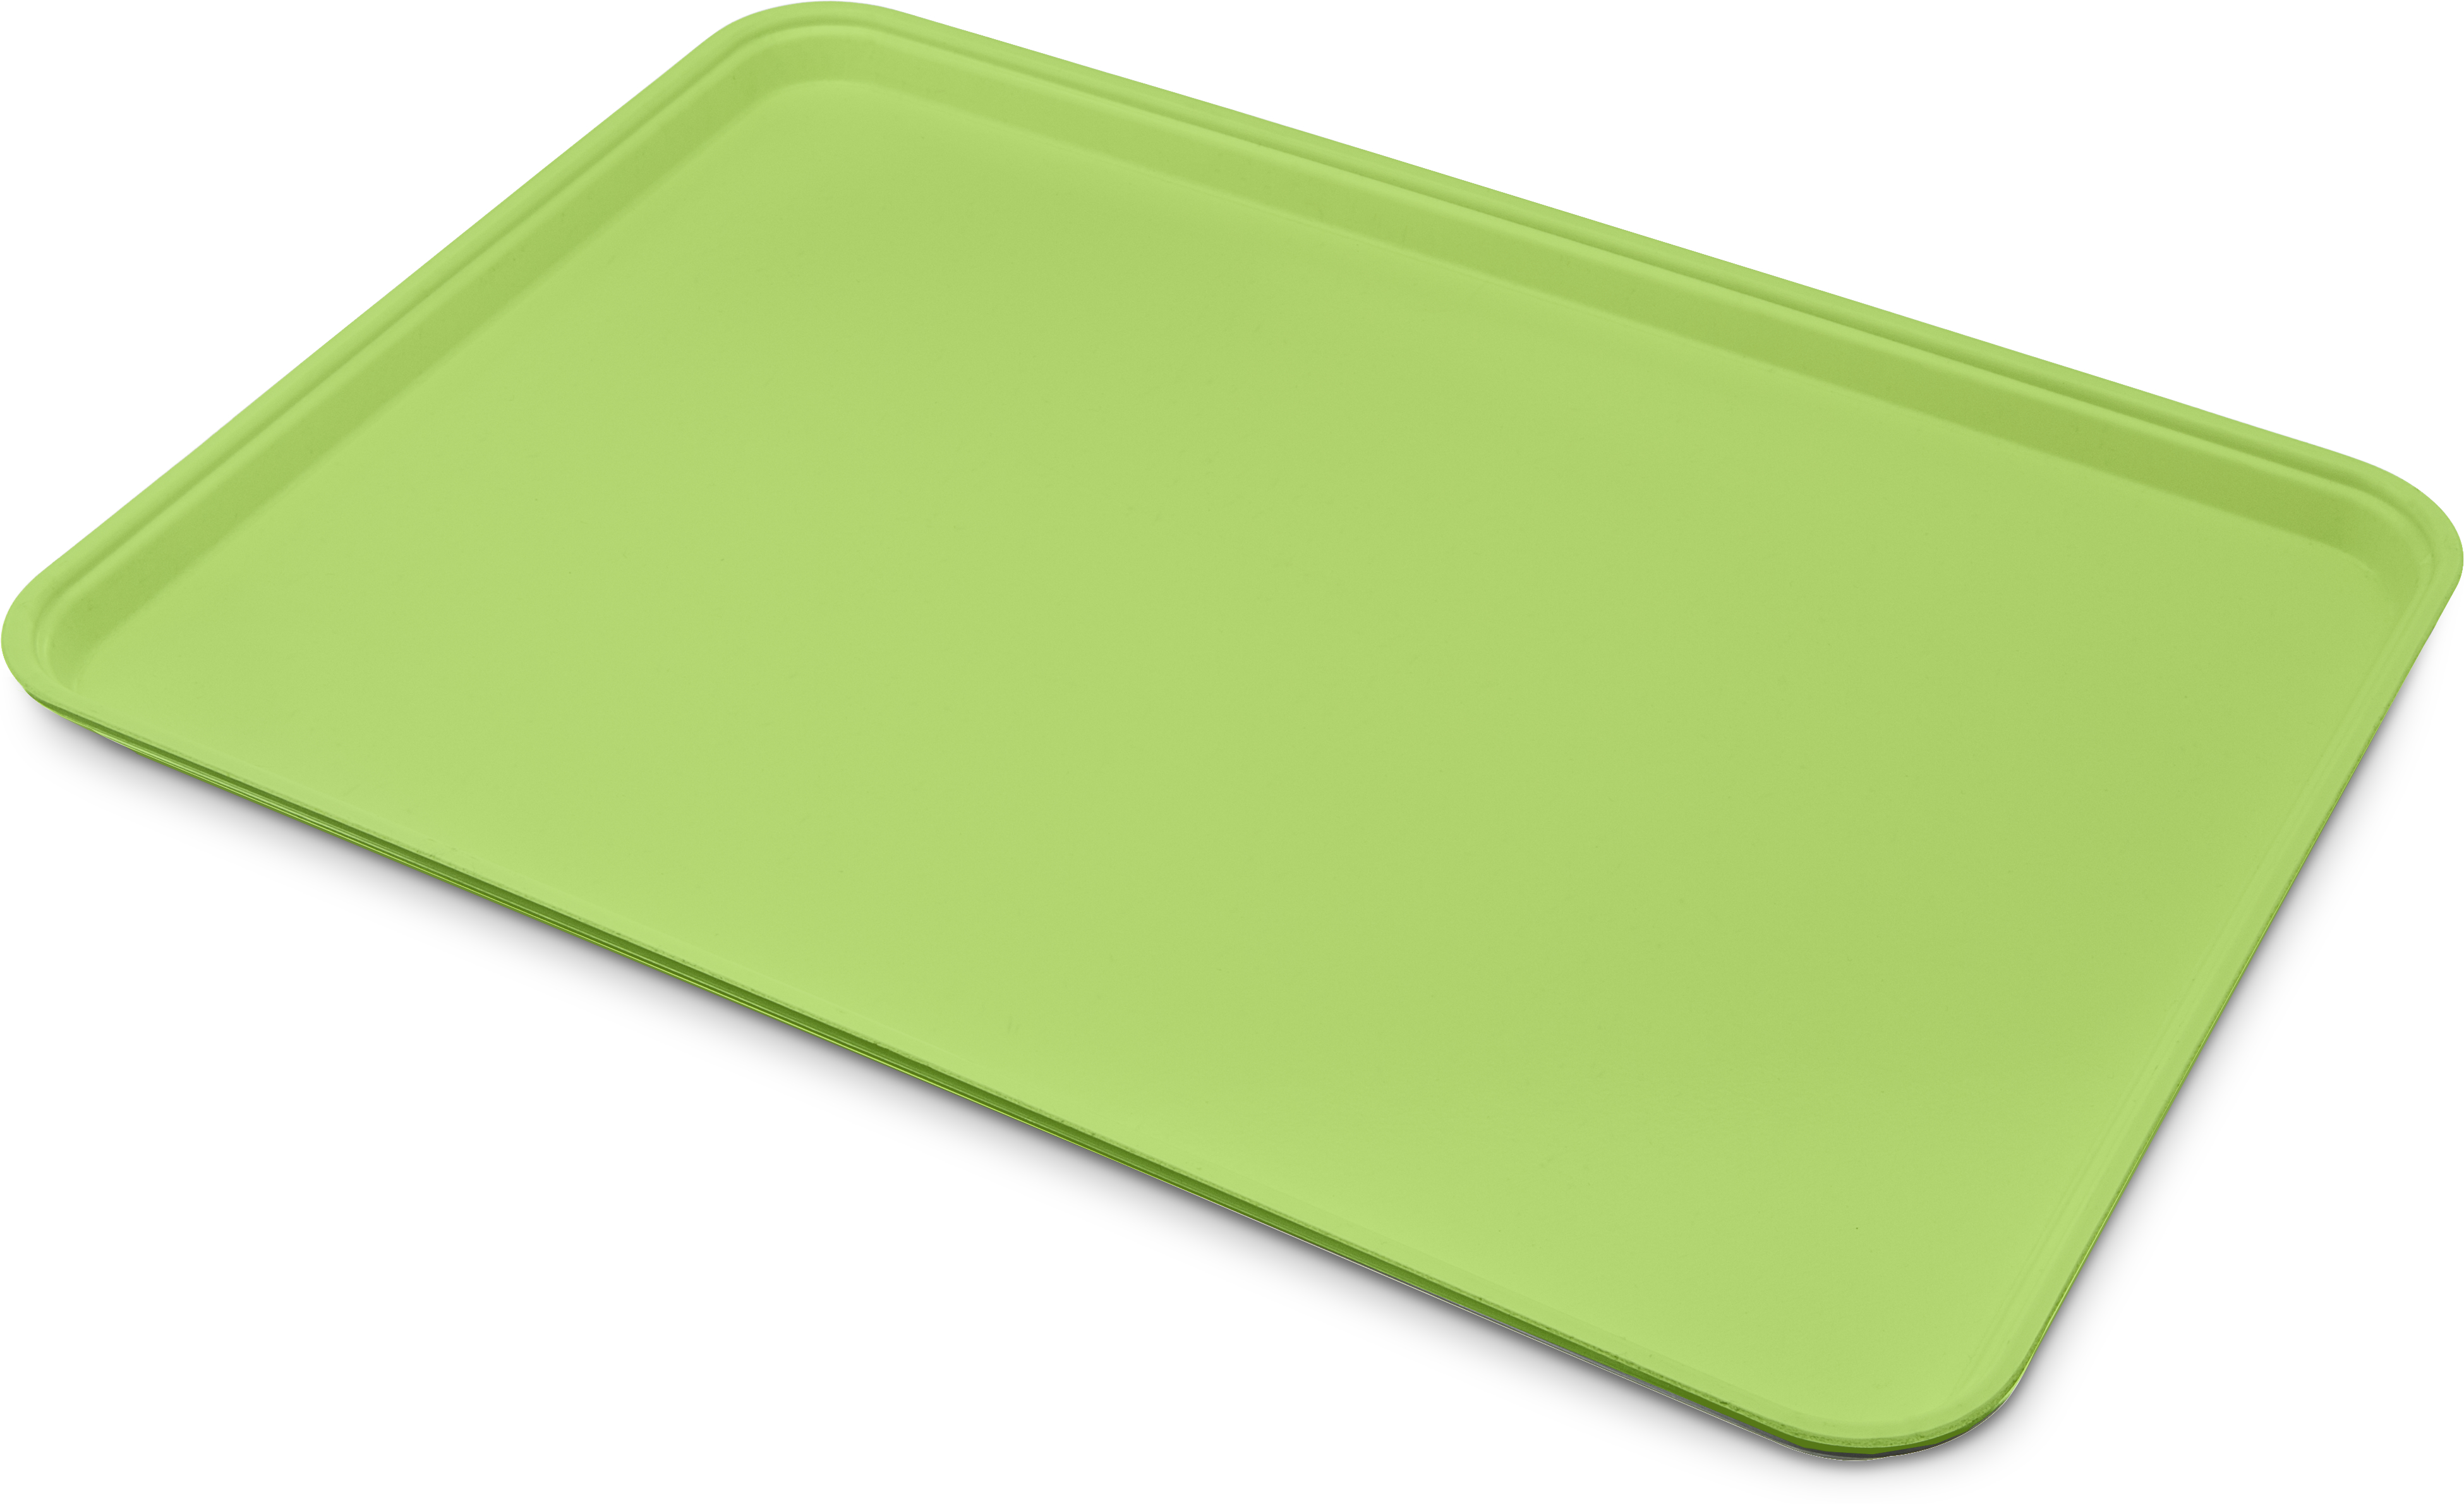 Glasteel Tray Display/Bakery 17.9 x 25.6 - Lime